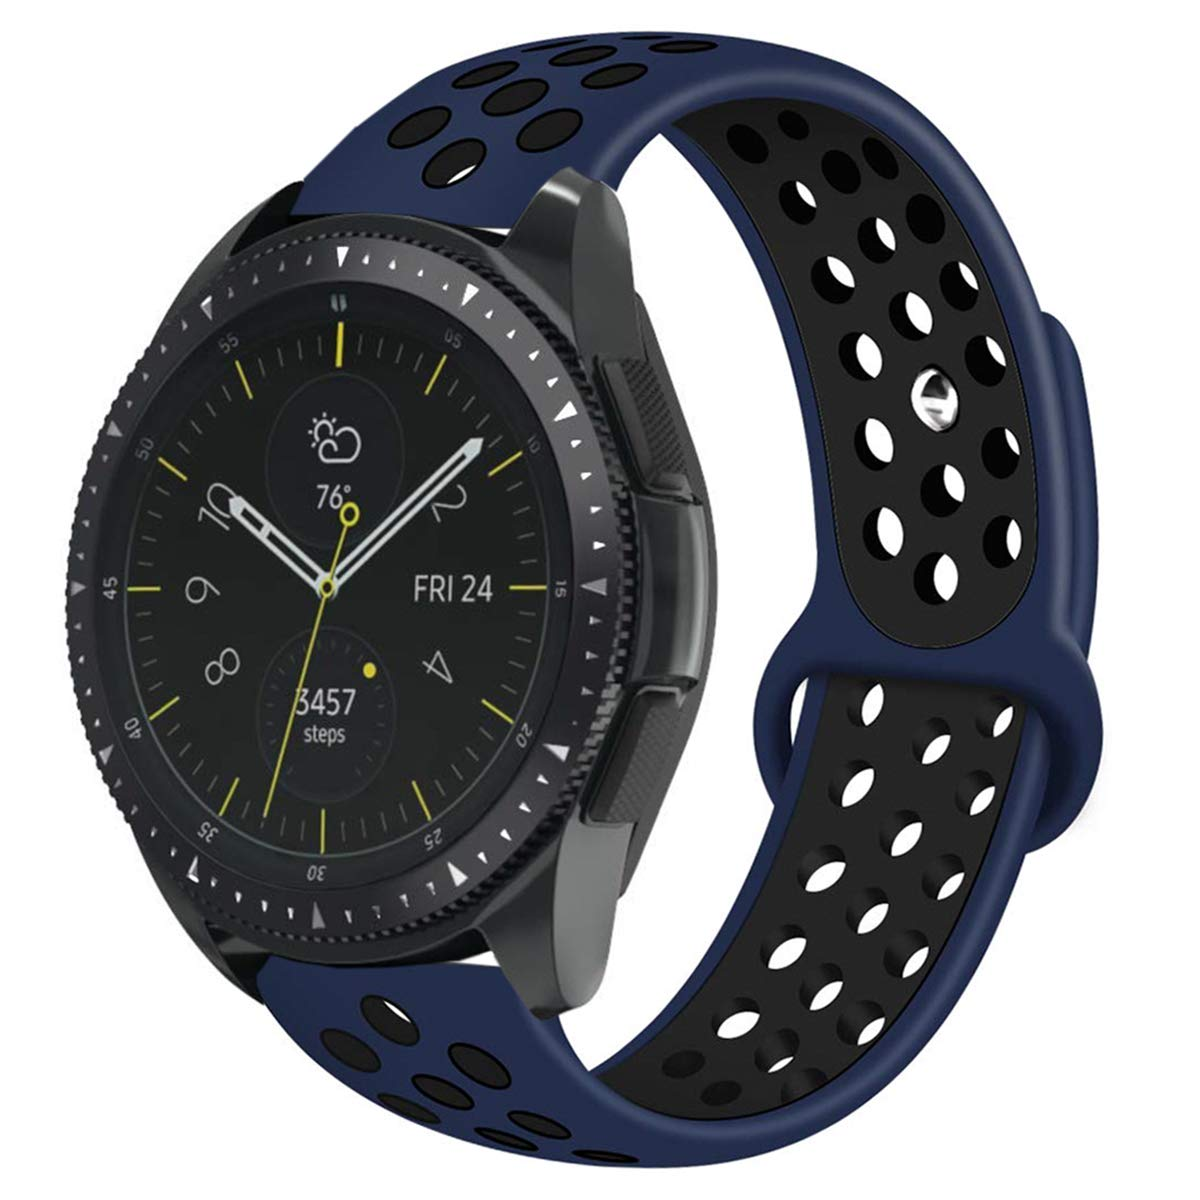 Compatible with Samsung Galaxy Watch 42mm Bands/Gear Sport Band, 20mm Breathable Silicone Strap Sports Replacement Wristband for Galaxy Watch ...